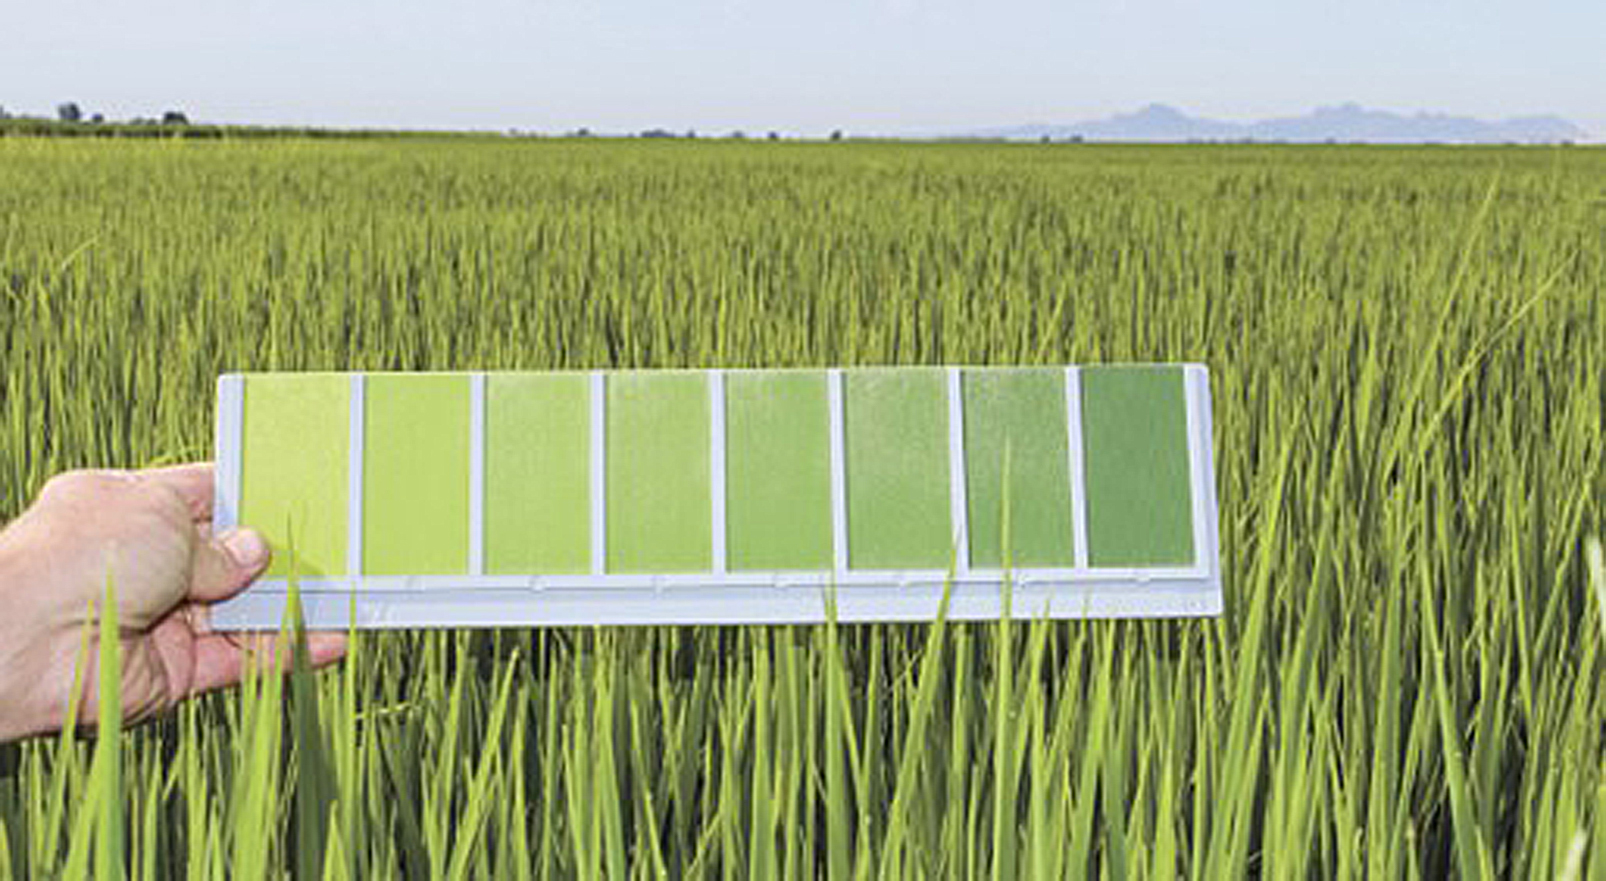 The Color Green Rice Farming